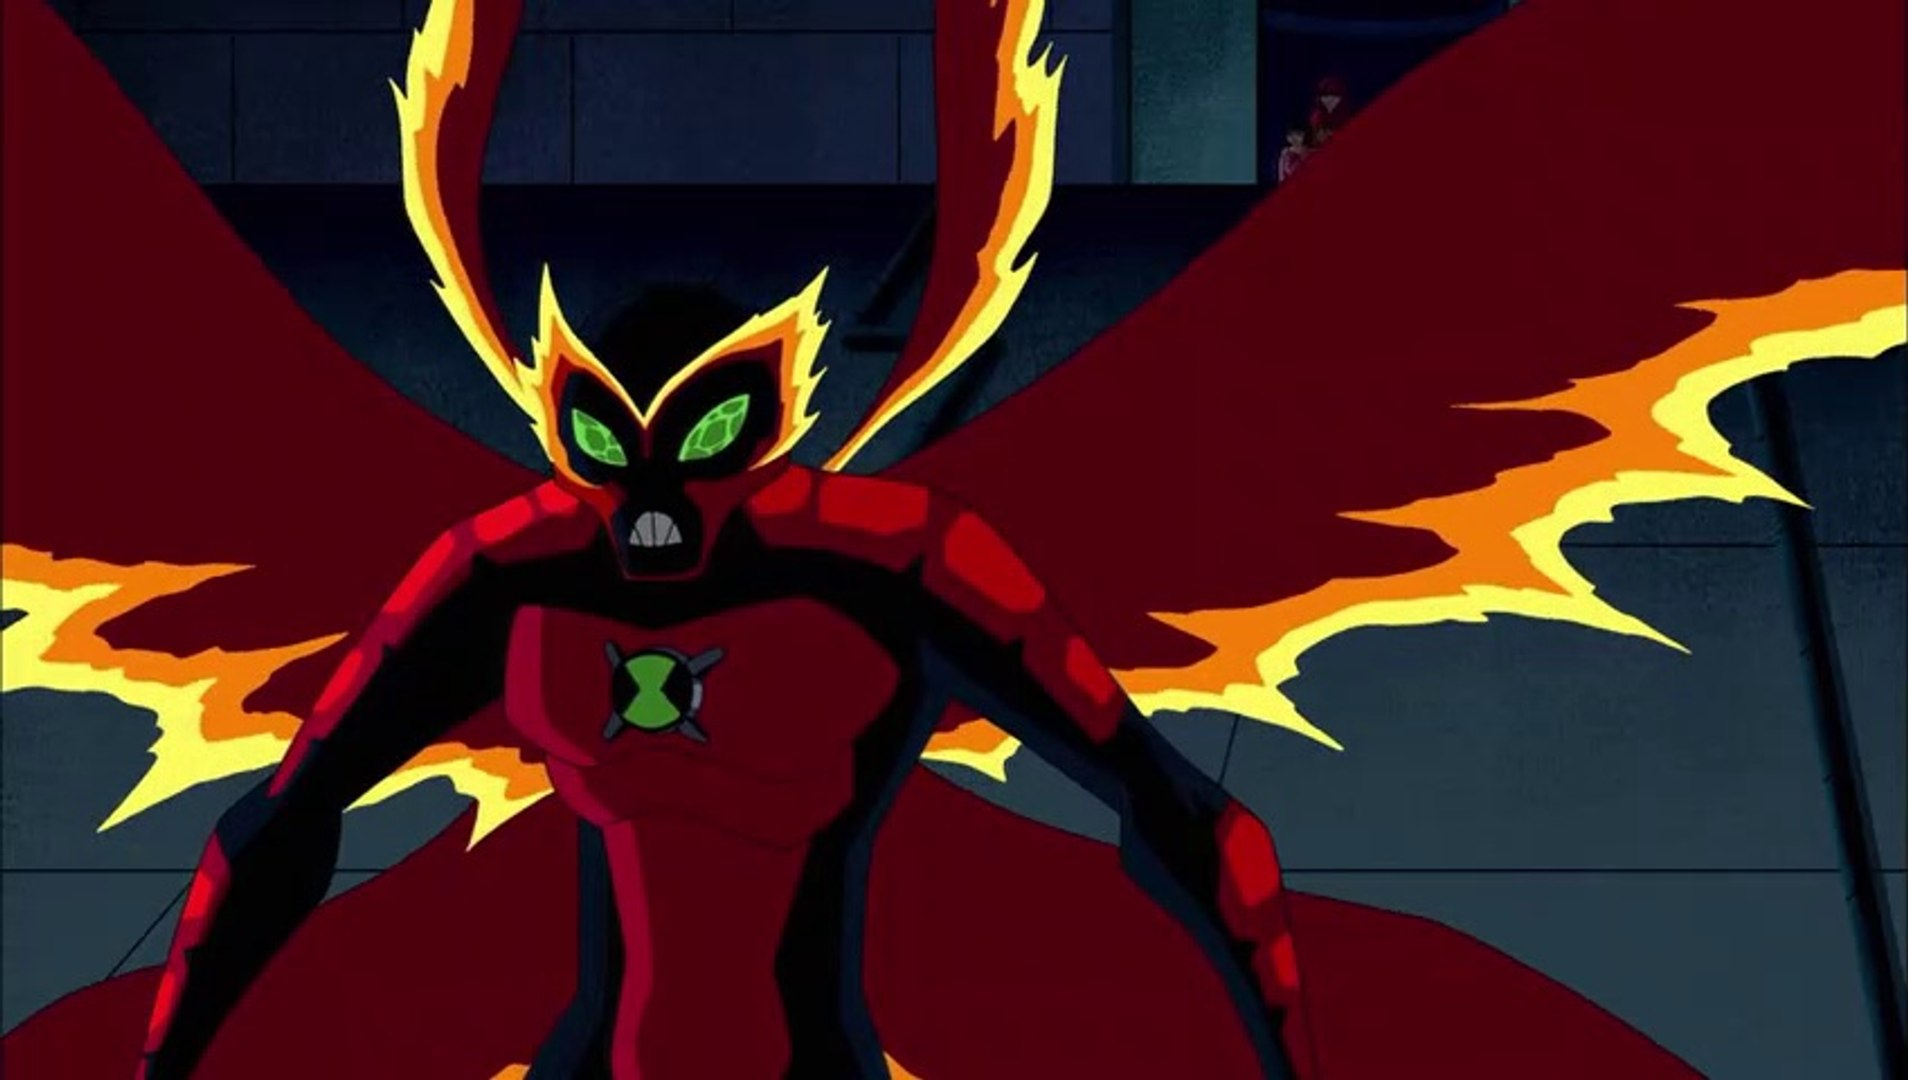 Ben 10 Ultimate Alien - Tamil - The Flame Keepers Circle - HD